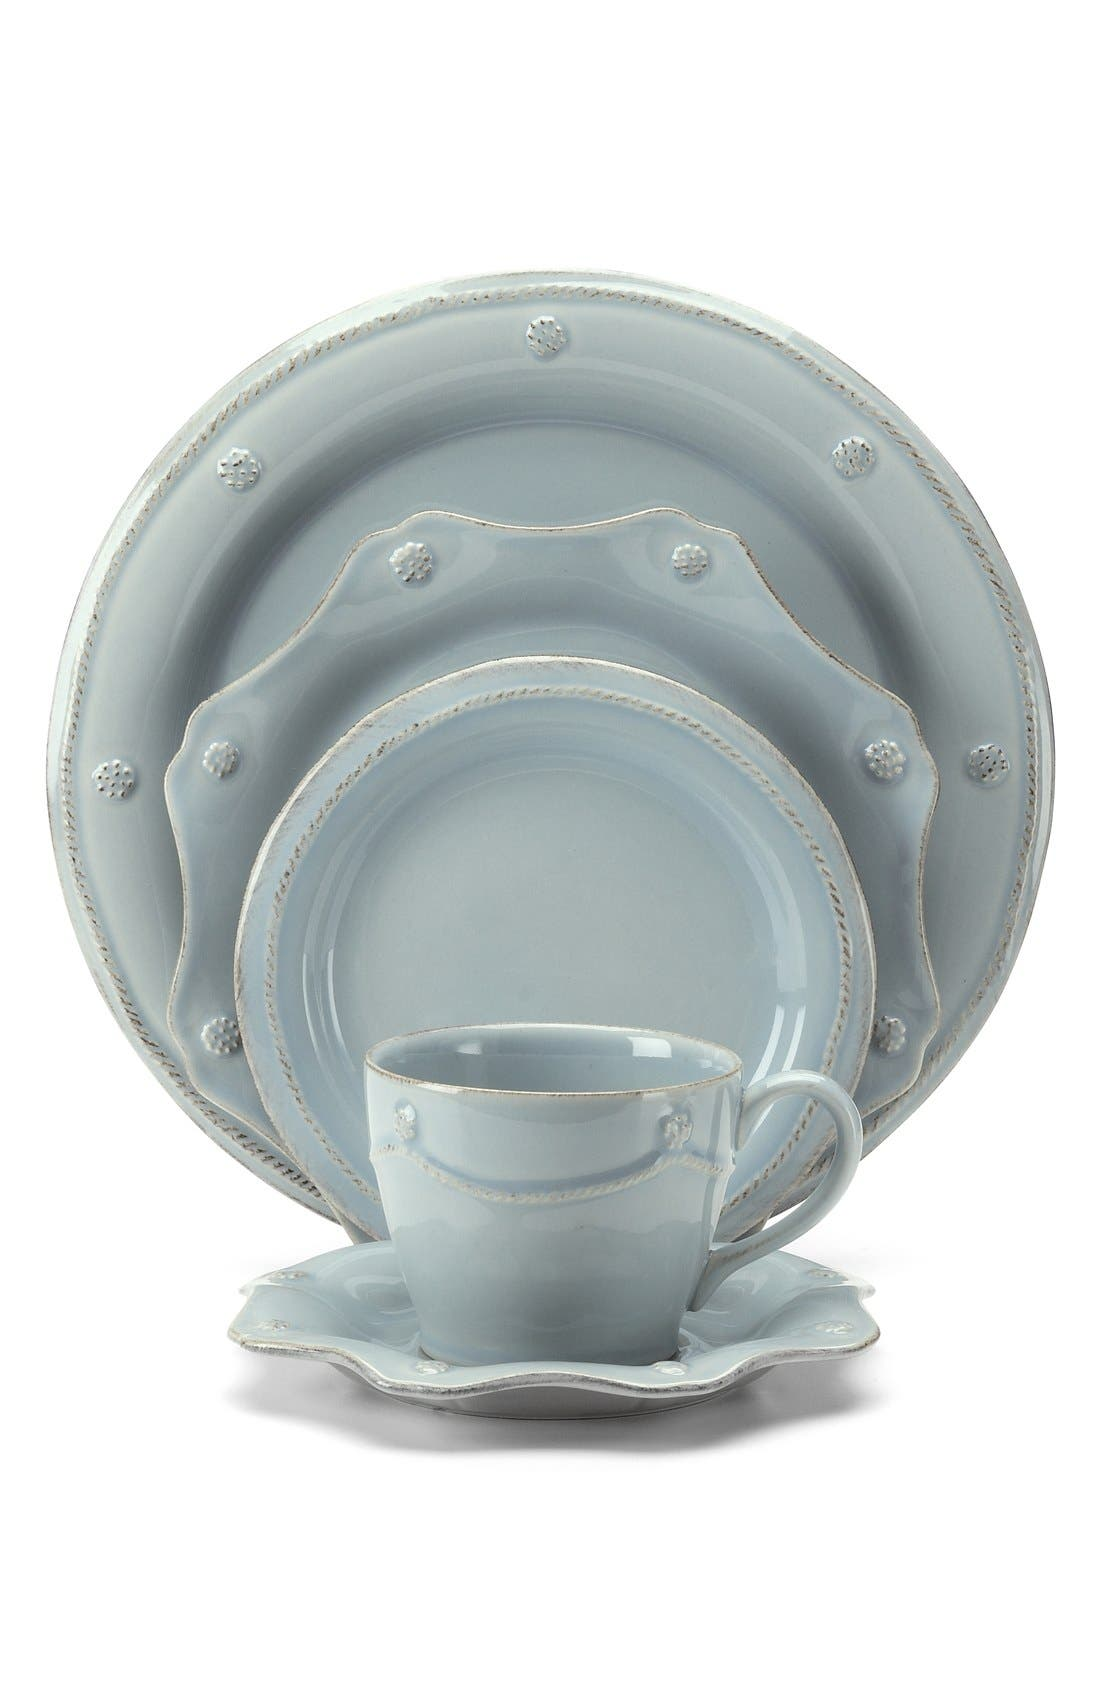 'Berry and Thread' 5-Piece Ceramic Place Setting,                             Main thumbnail 1, color,                             440